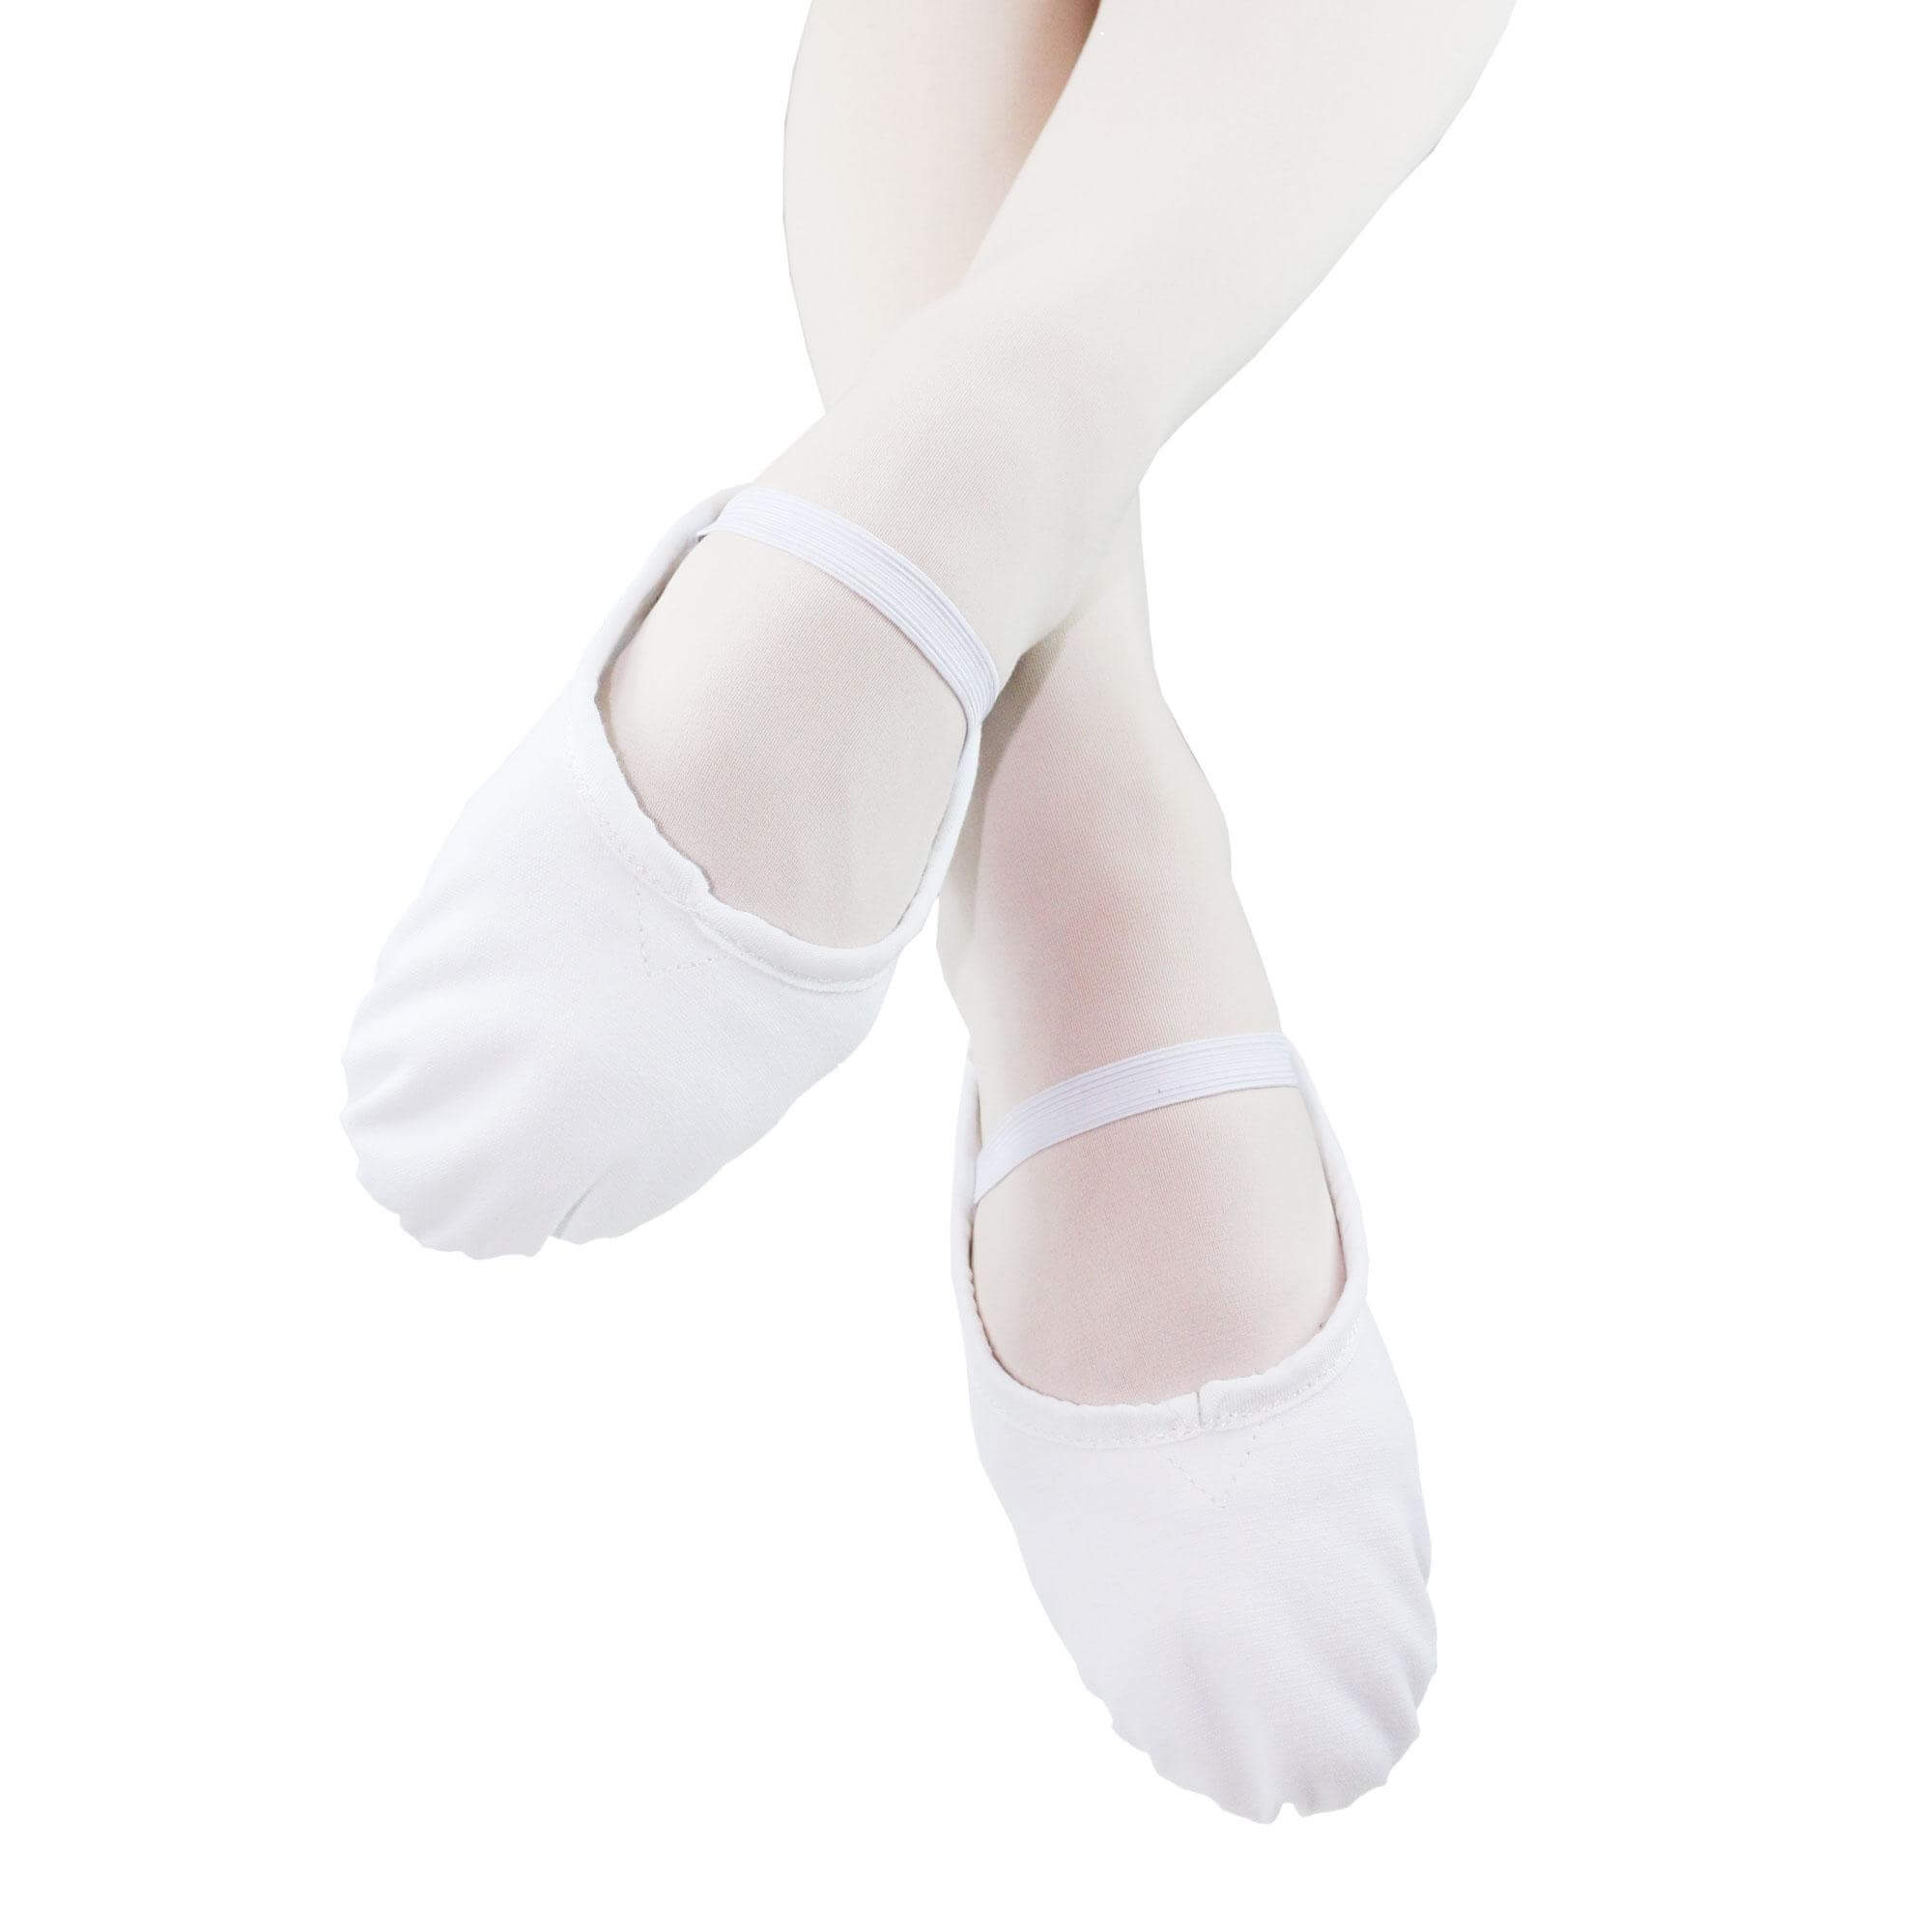 ccbf4ff82 Ballet Ballet Slippers  ballet shoes